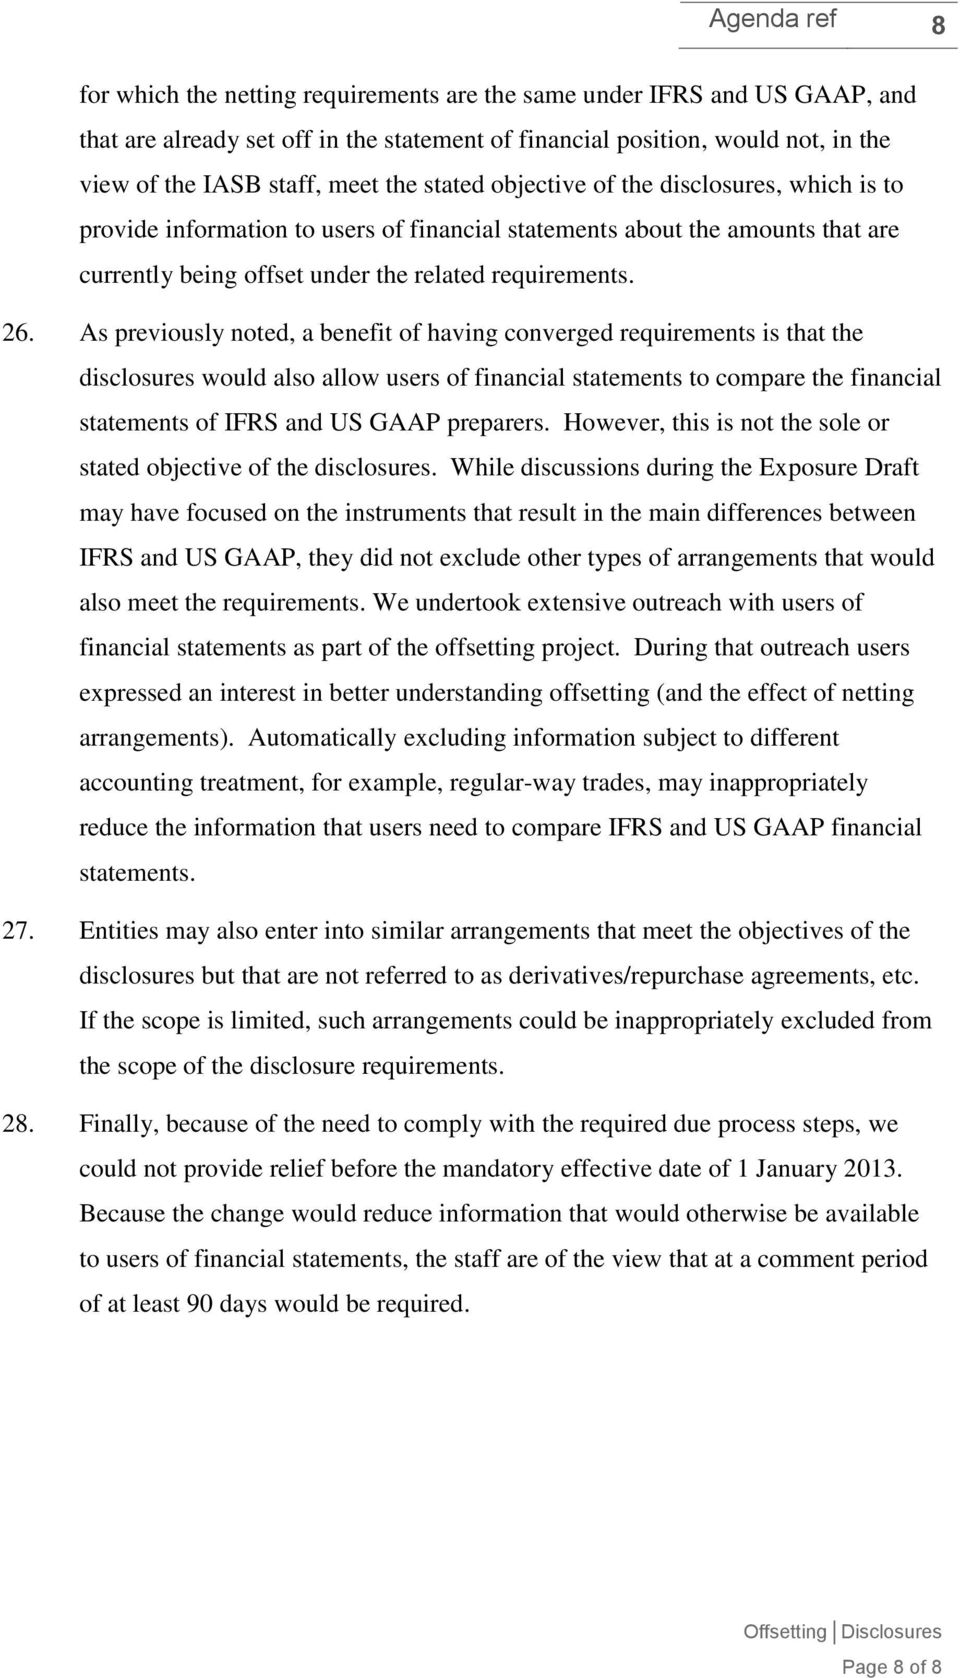 As previously noted, a benefit of having converged requirements is that the disclosures would also allow users of financial statements to compare the financial statements of IFRS and US GAAP